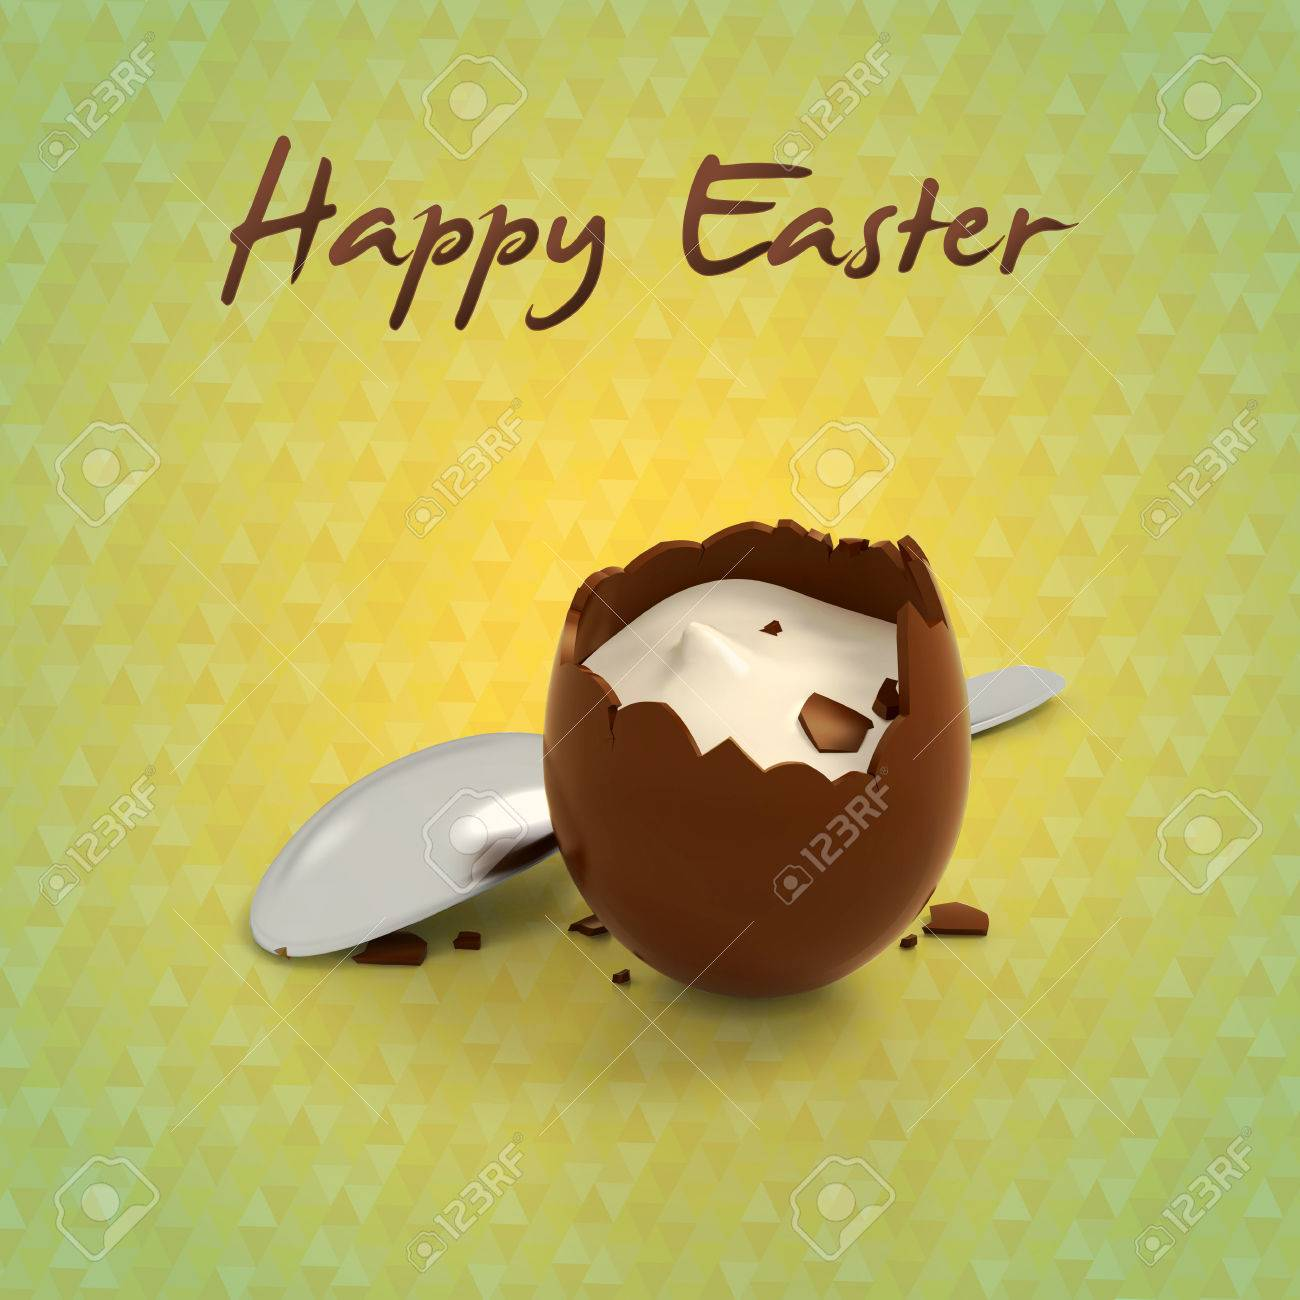 Happy Easter Eggs Illustration Of Crashed Chocolate Egg Cream ...